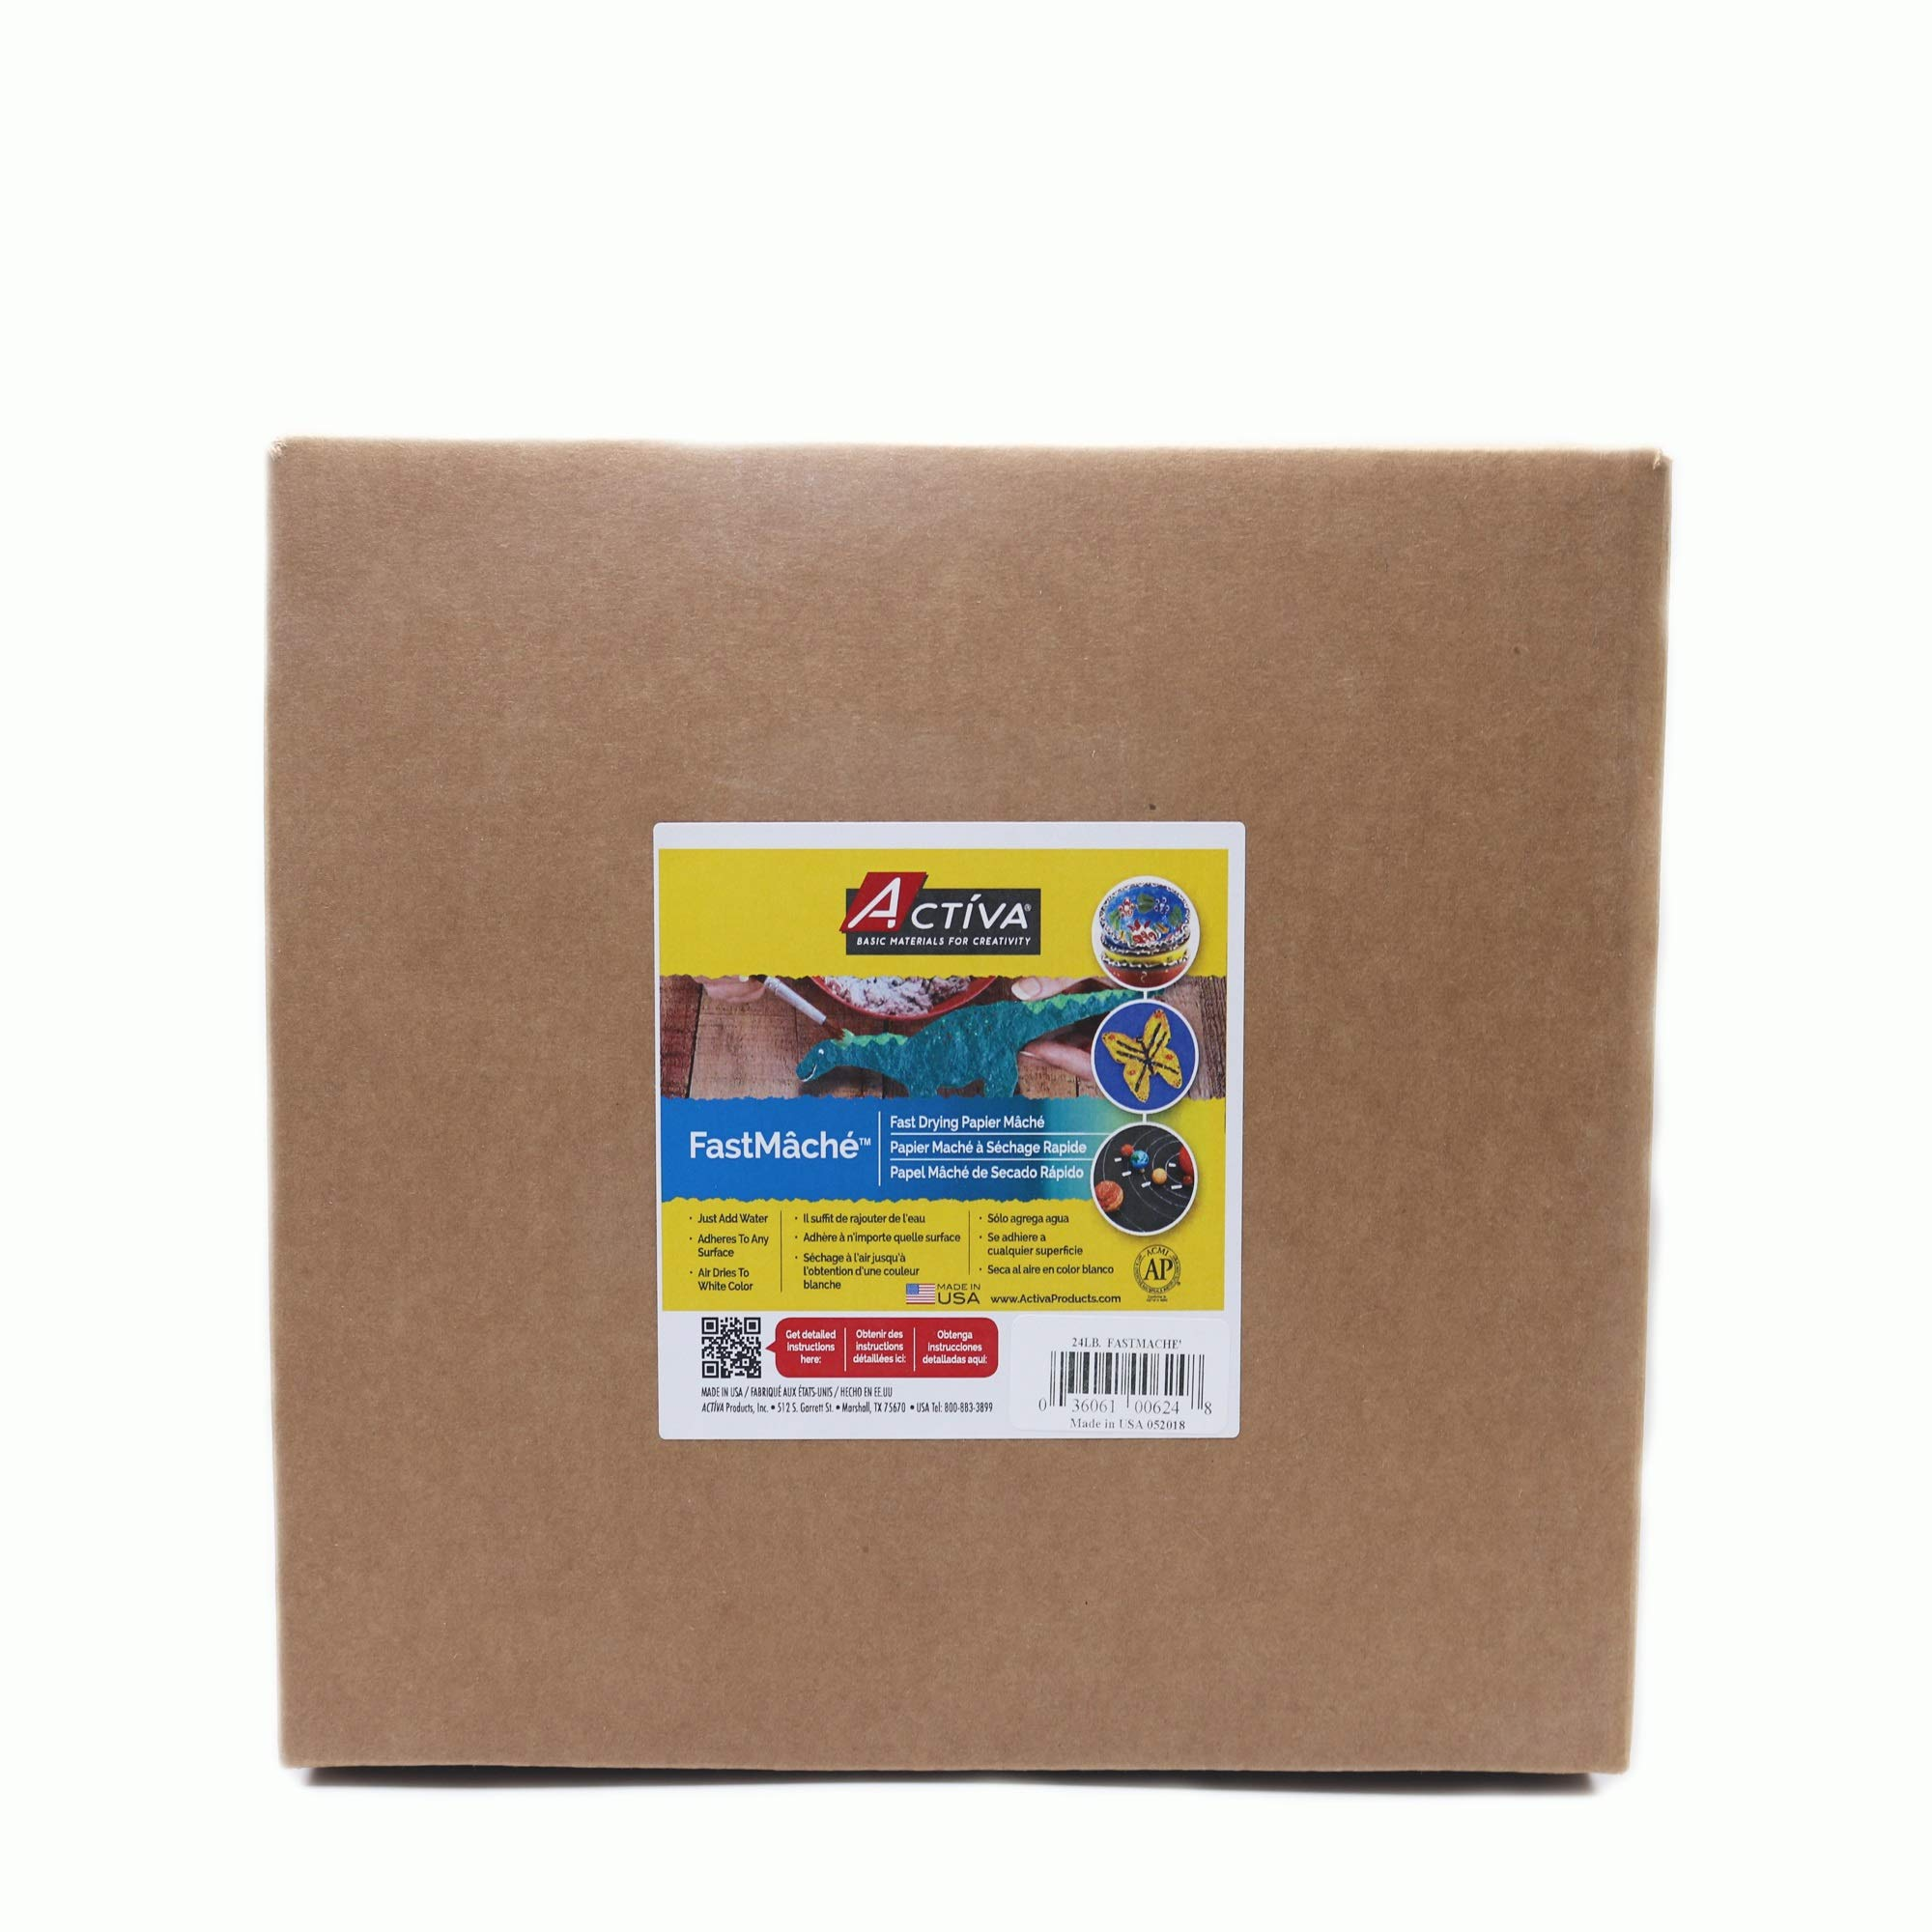 ACTIVA Fast Mache Fast Drying Instant Papier Mache - 24 pounds by Activa Products